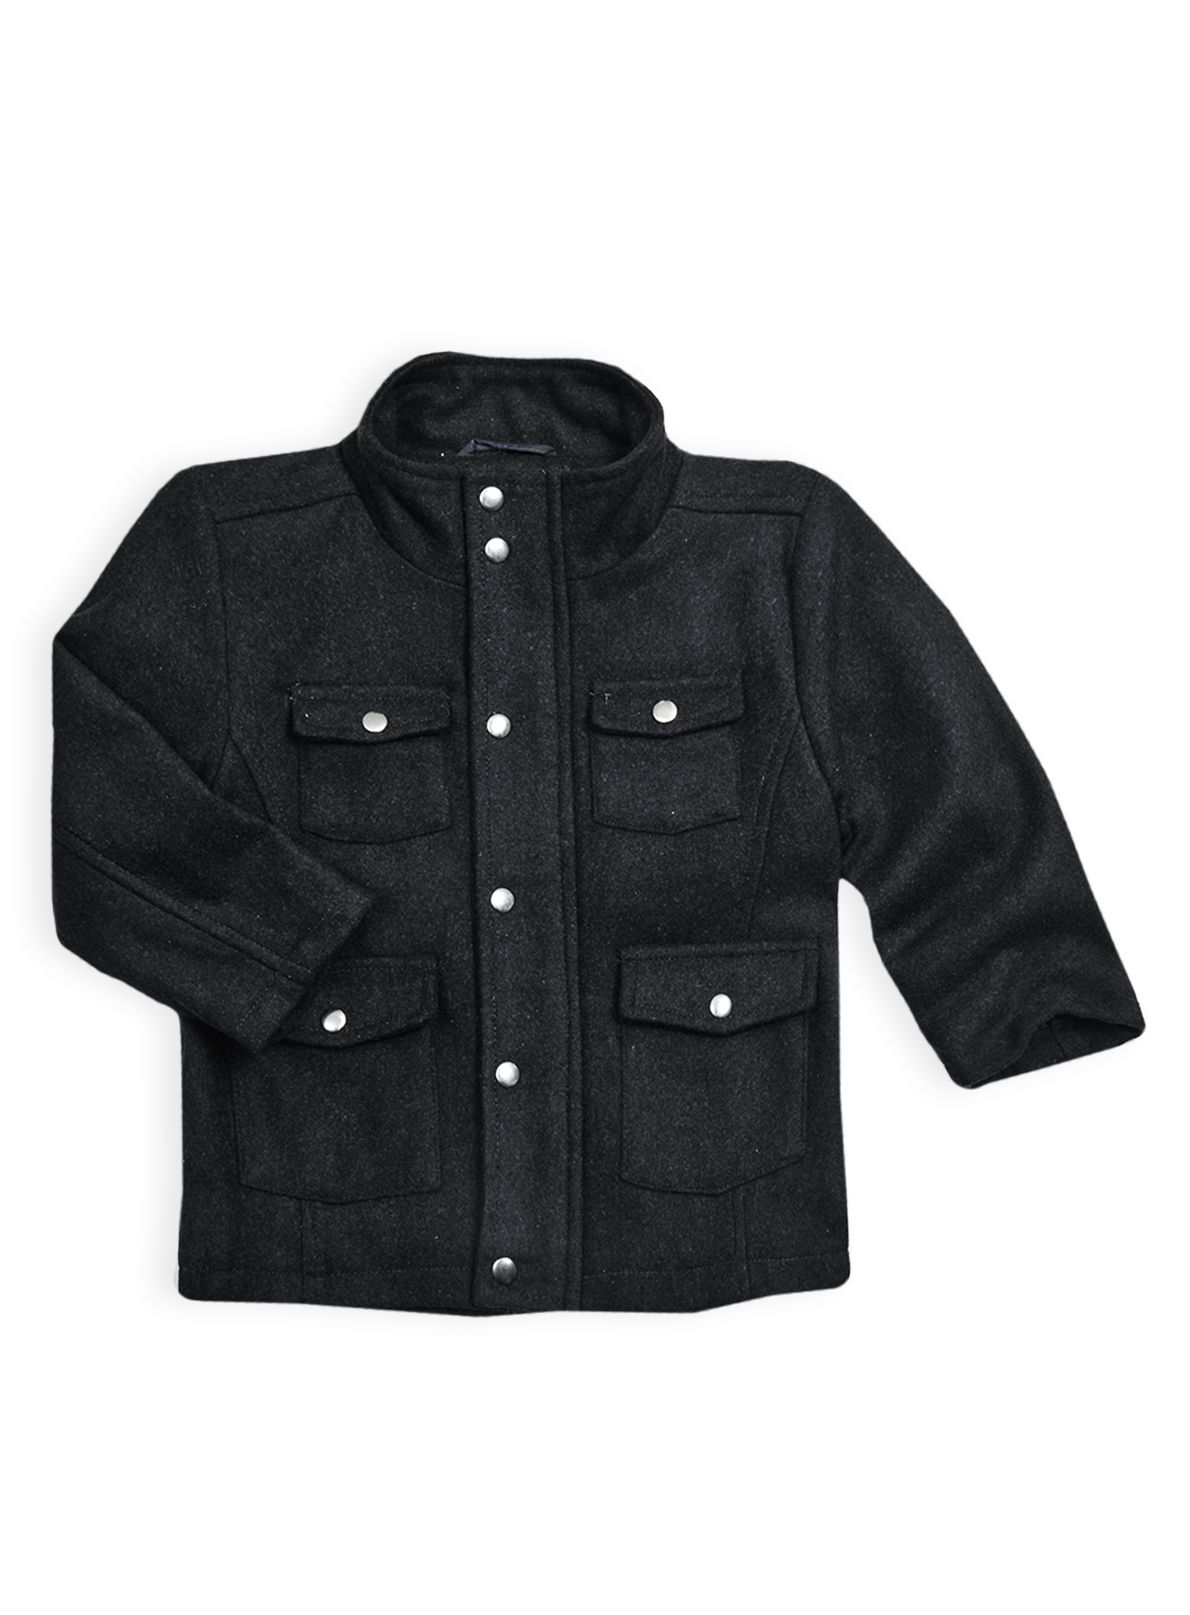 Boys lined bush jacket